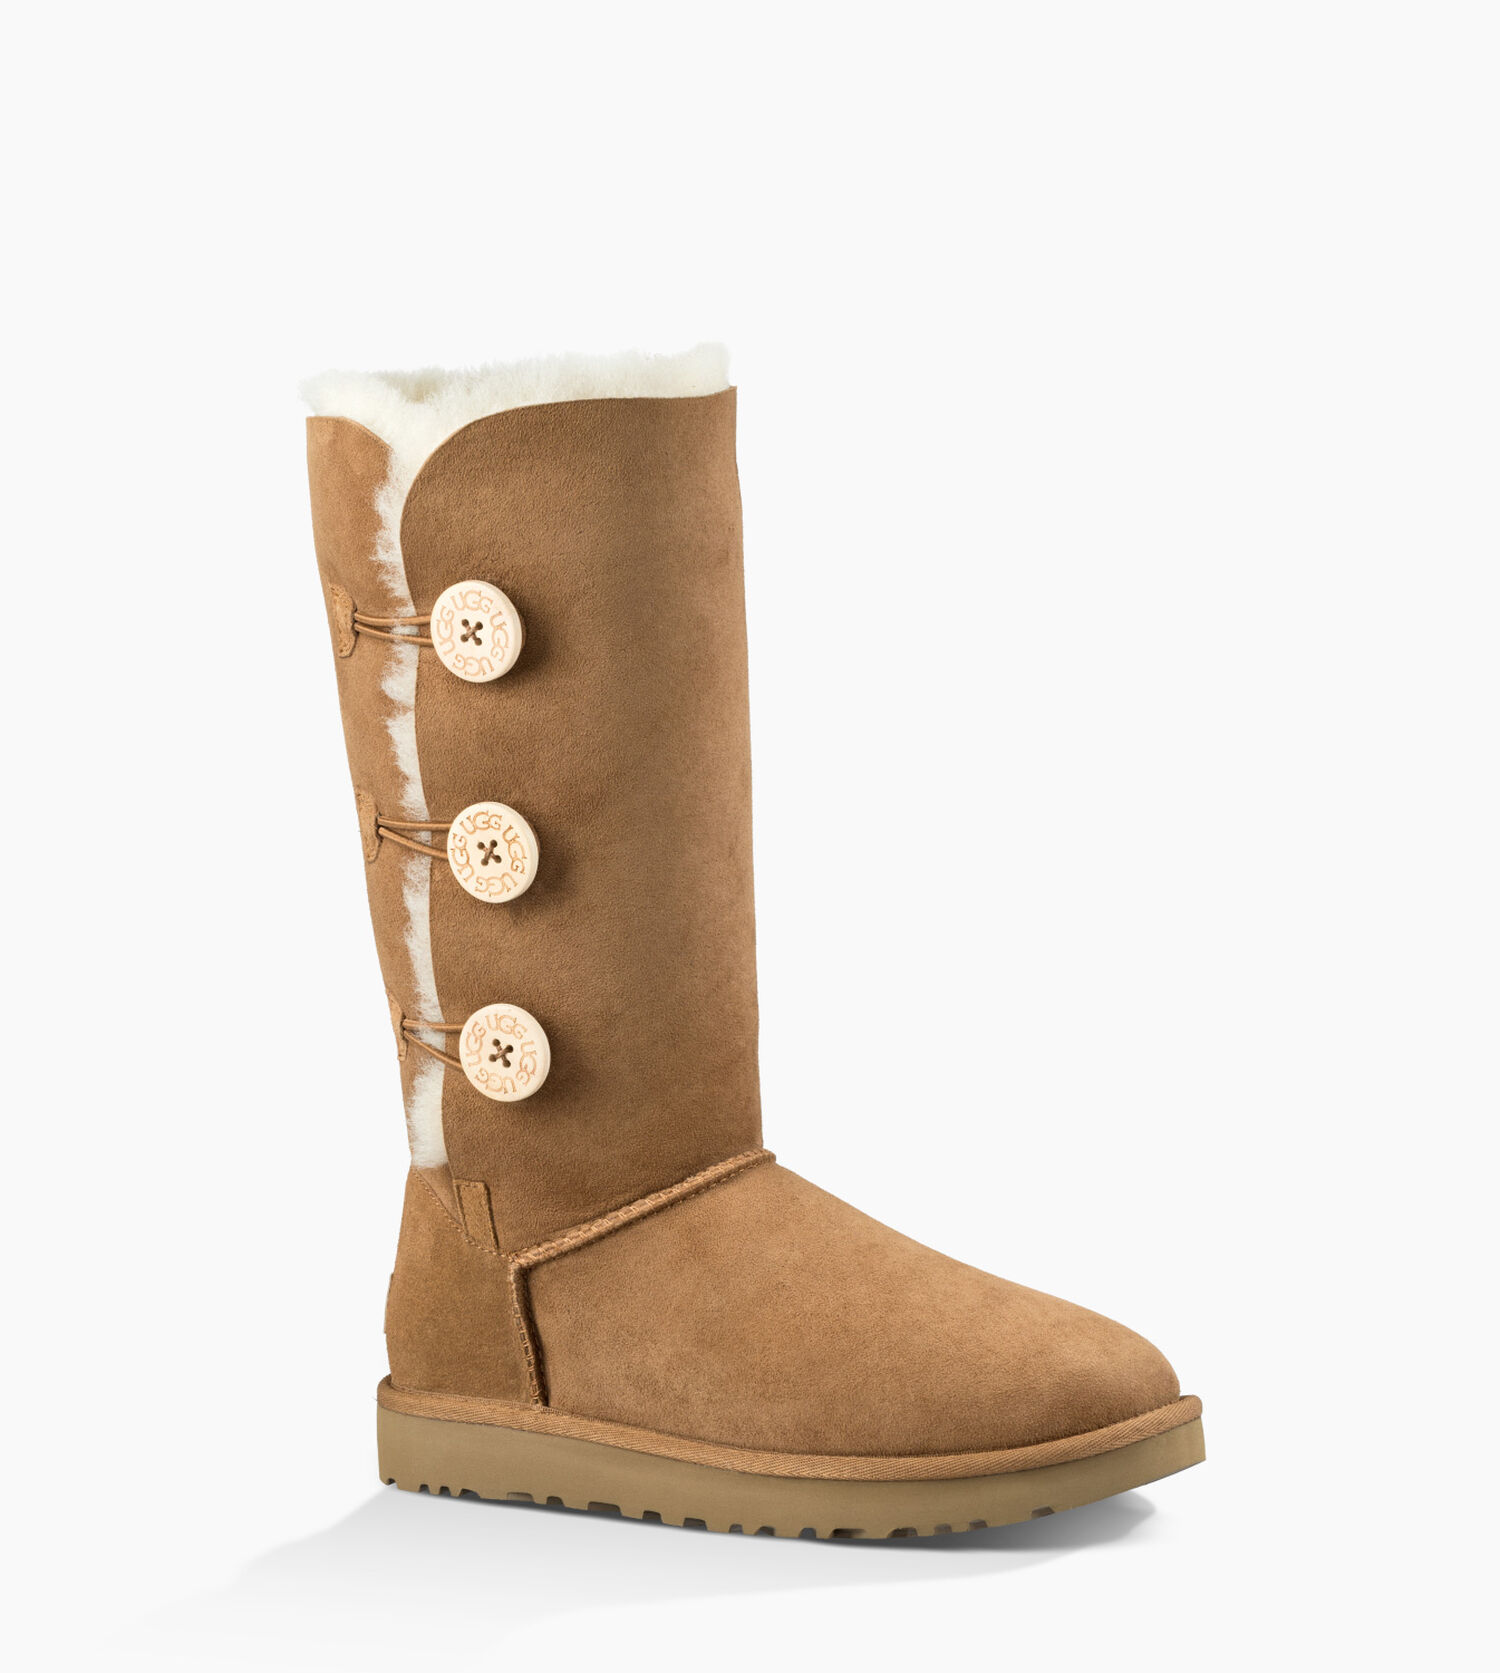 25545cdd836 Women's Share this product Bailey Button Triplet II Boot